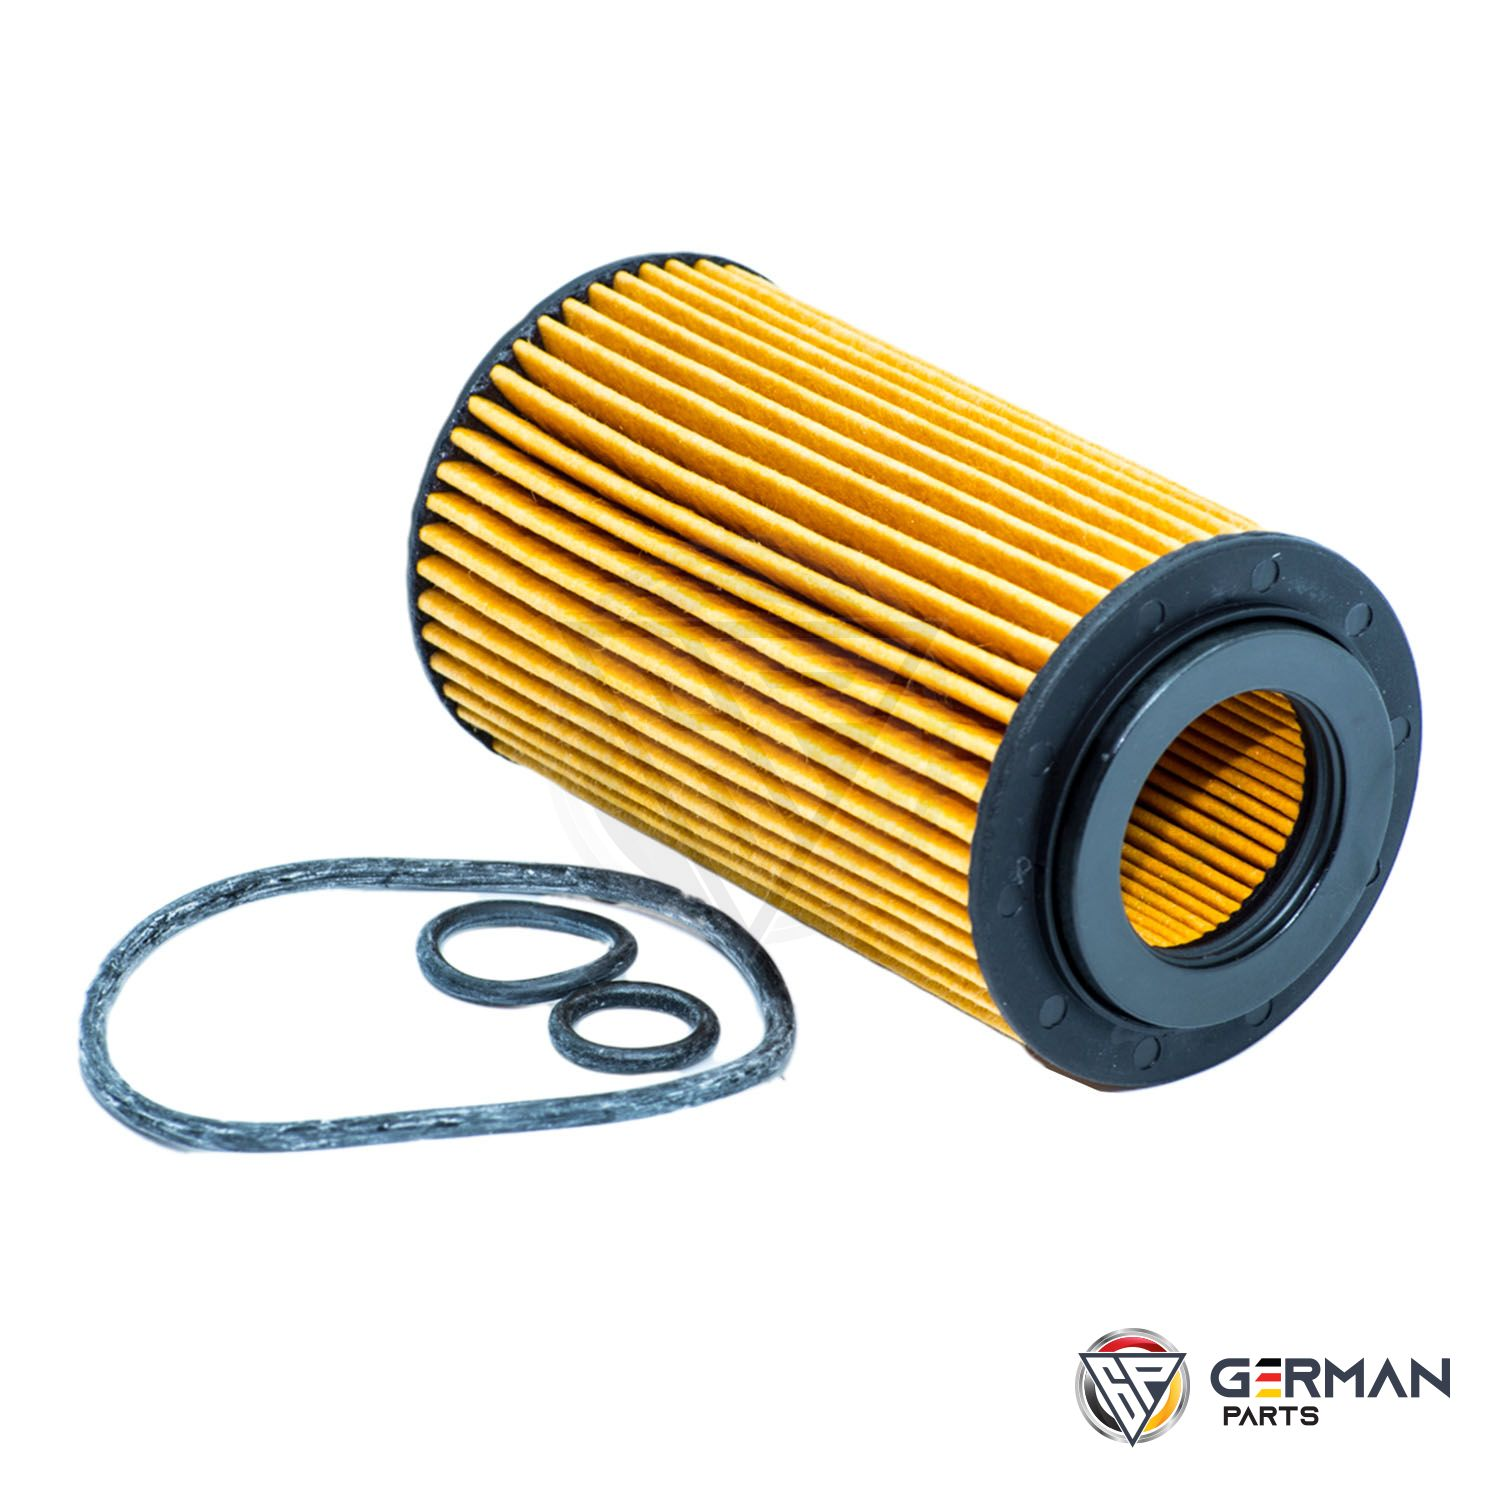 Buy Mercedes Benz Oil Filter 6511800109 - German Parts